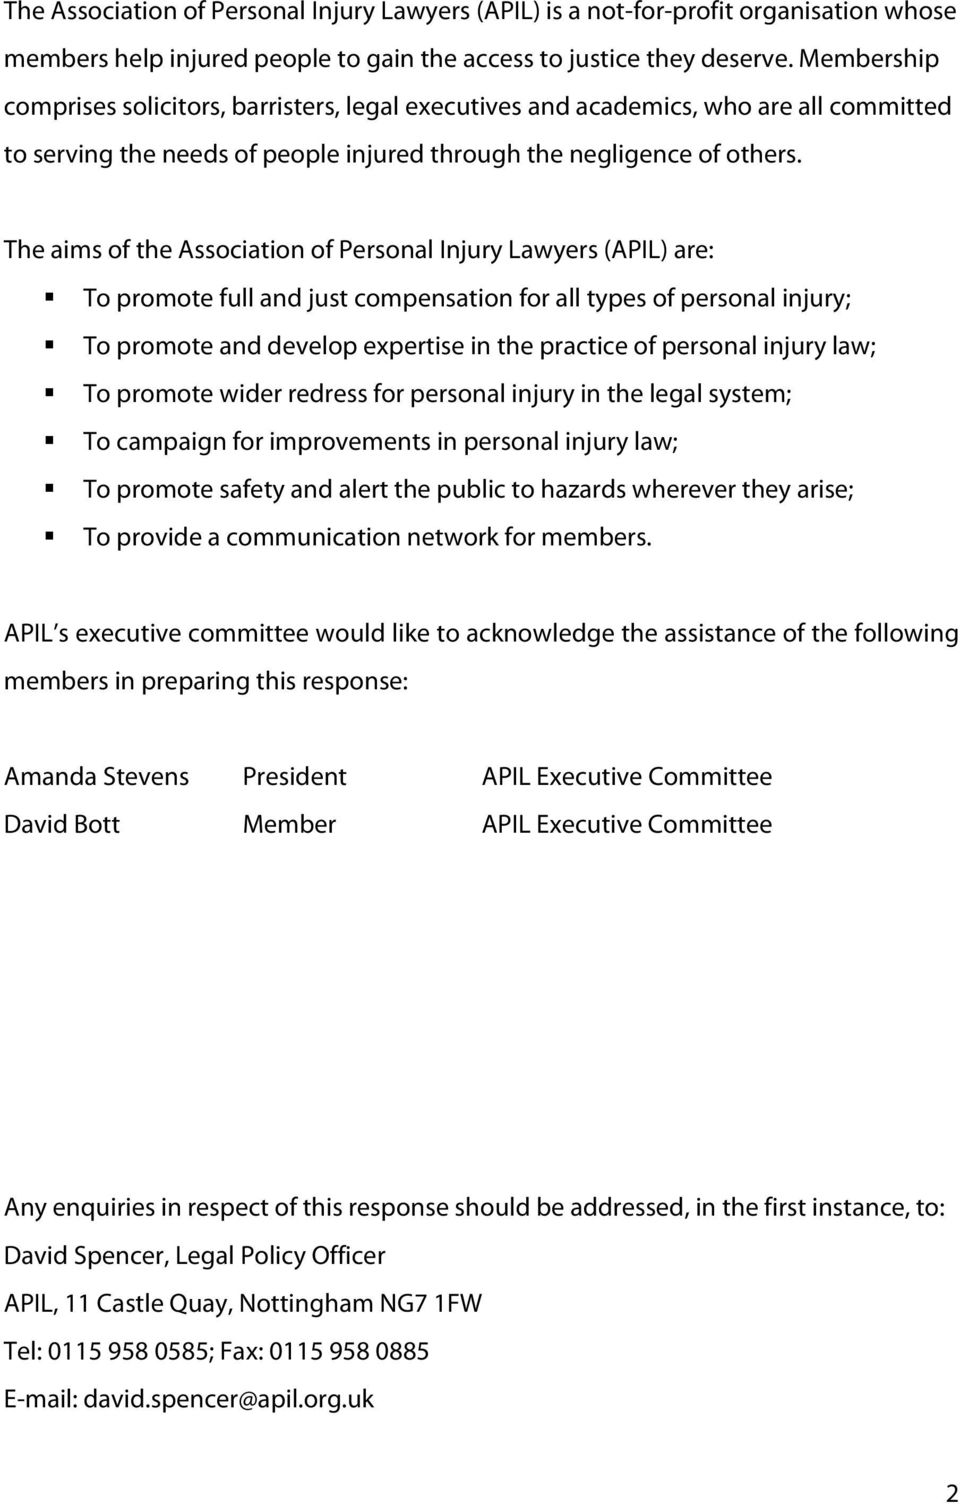 The aims of the Association of Personal Injury Lawyers (APIL) are: To promote full and just compensation for all types of personal injury; To promote and develop expertise in the practice of personal